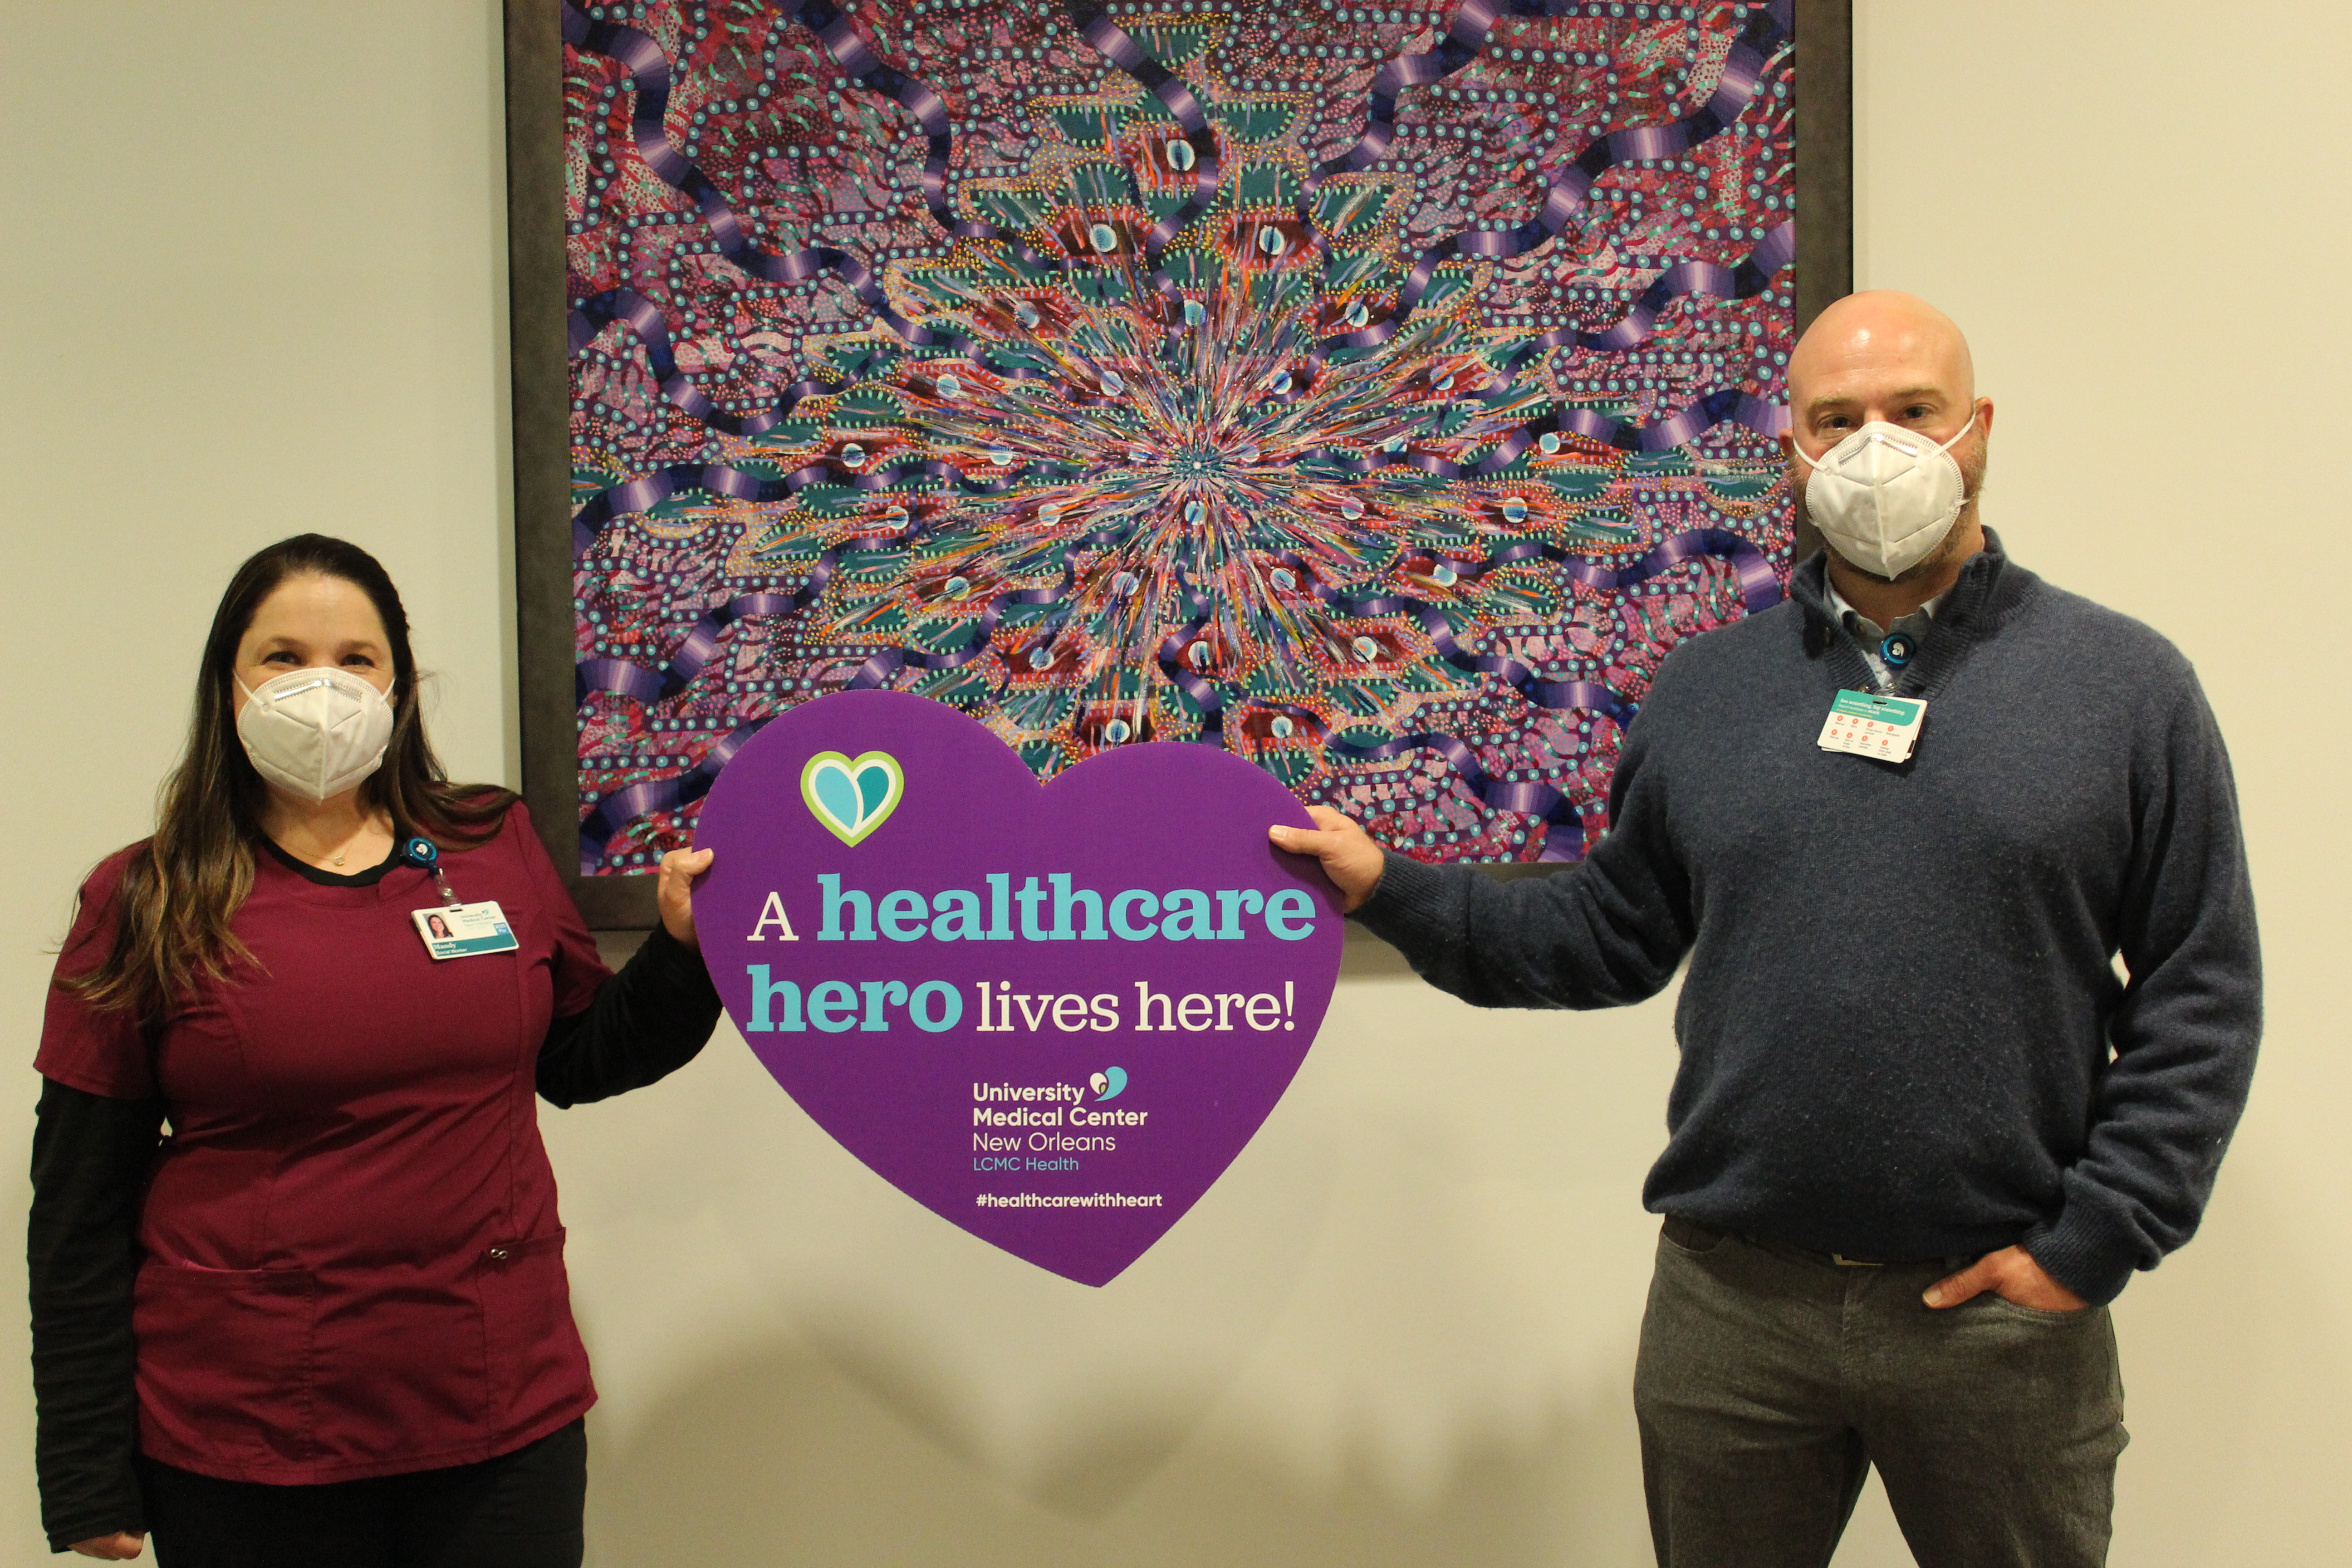 """A woman and a man wearing face coverings hold a sign shaped like a purple heart that says """"a healthcare hero lives here."""""""